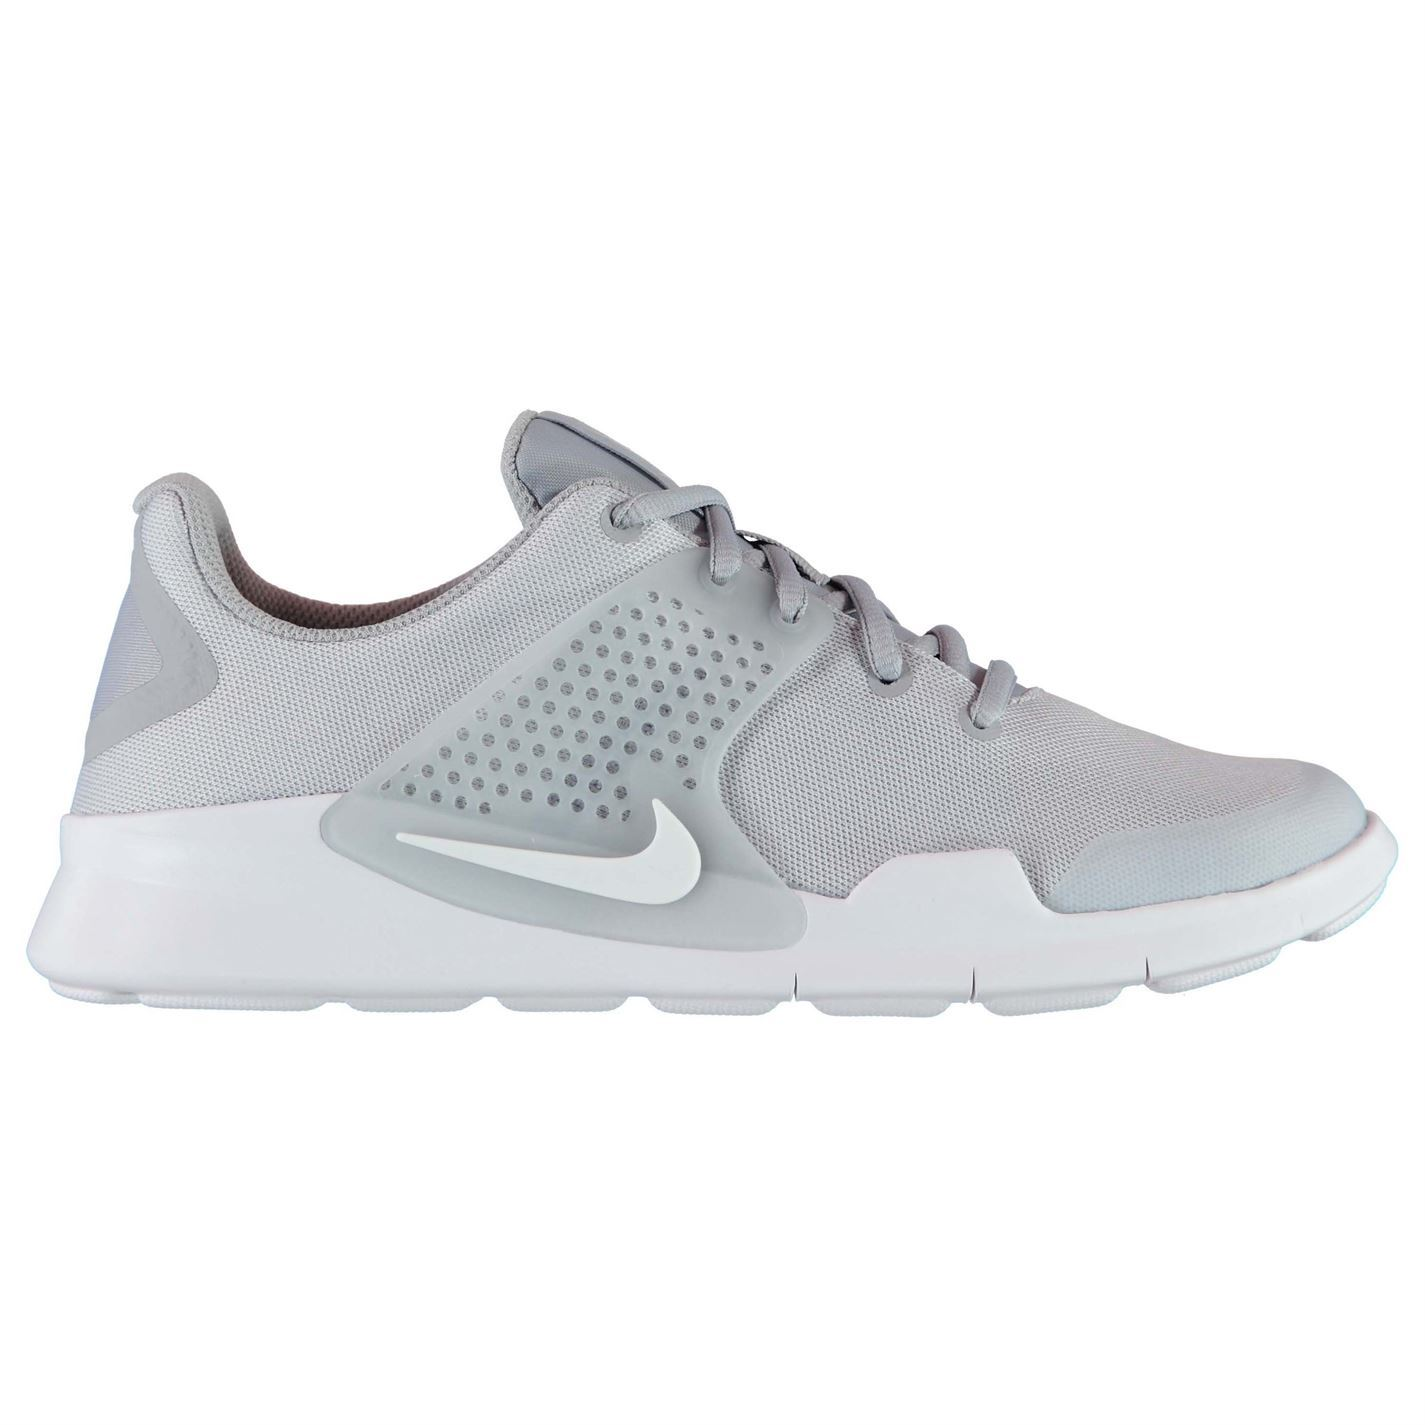 Nike Athletic Arrowz Trainers Mens Grey/White Athletic Nike Sneakers Shoes 390656